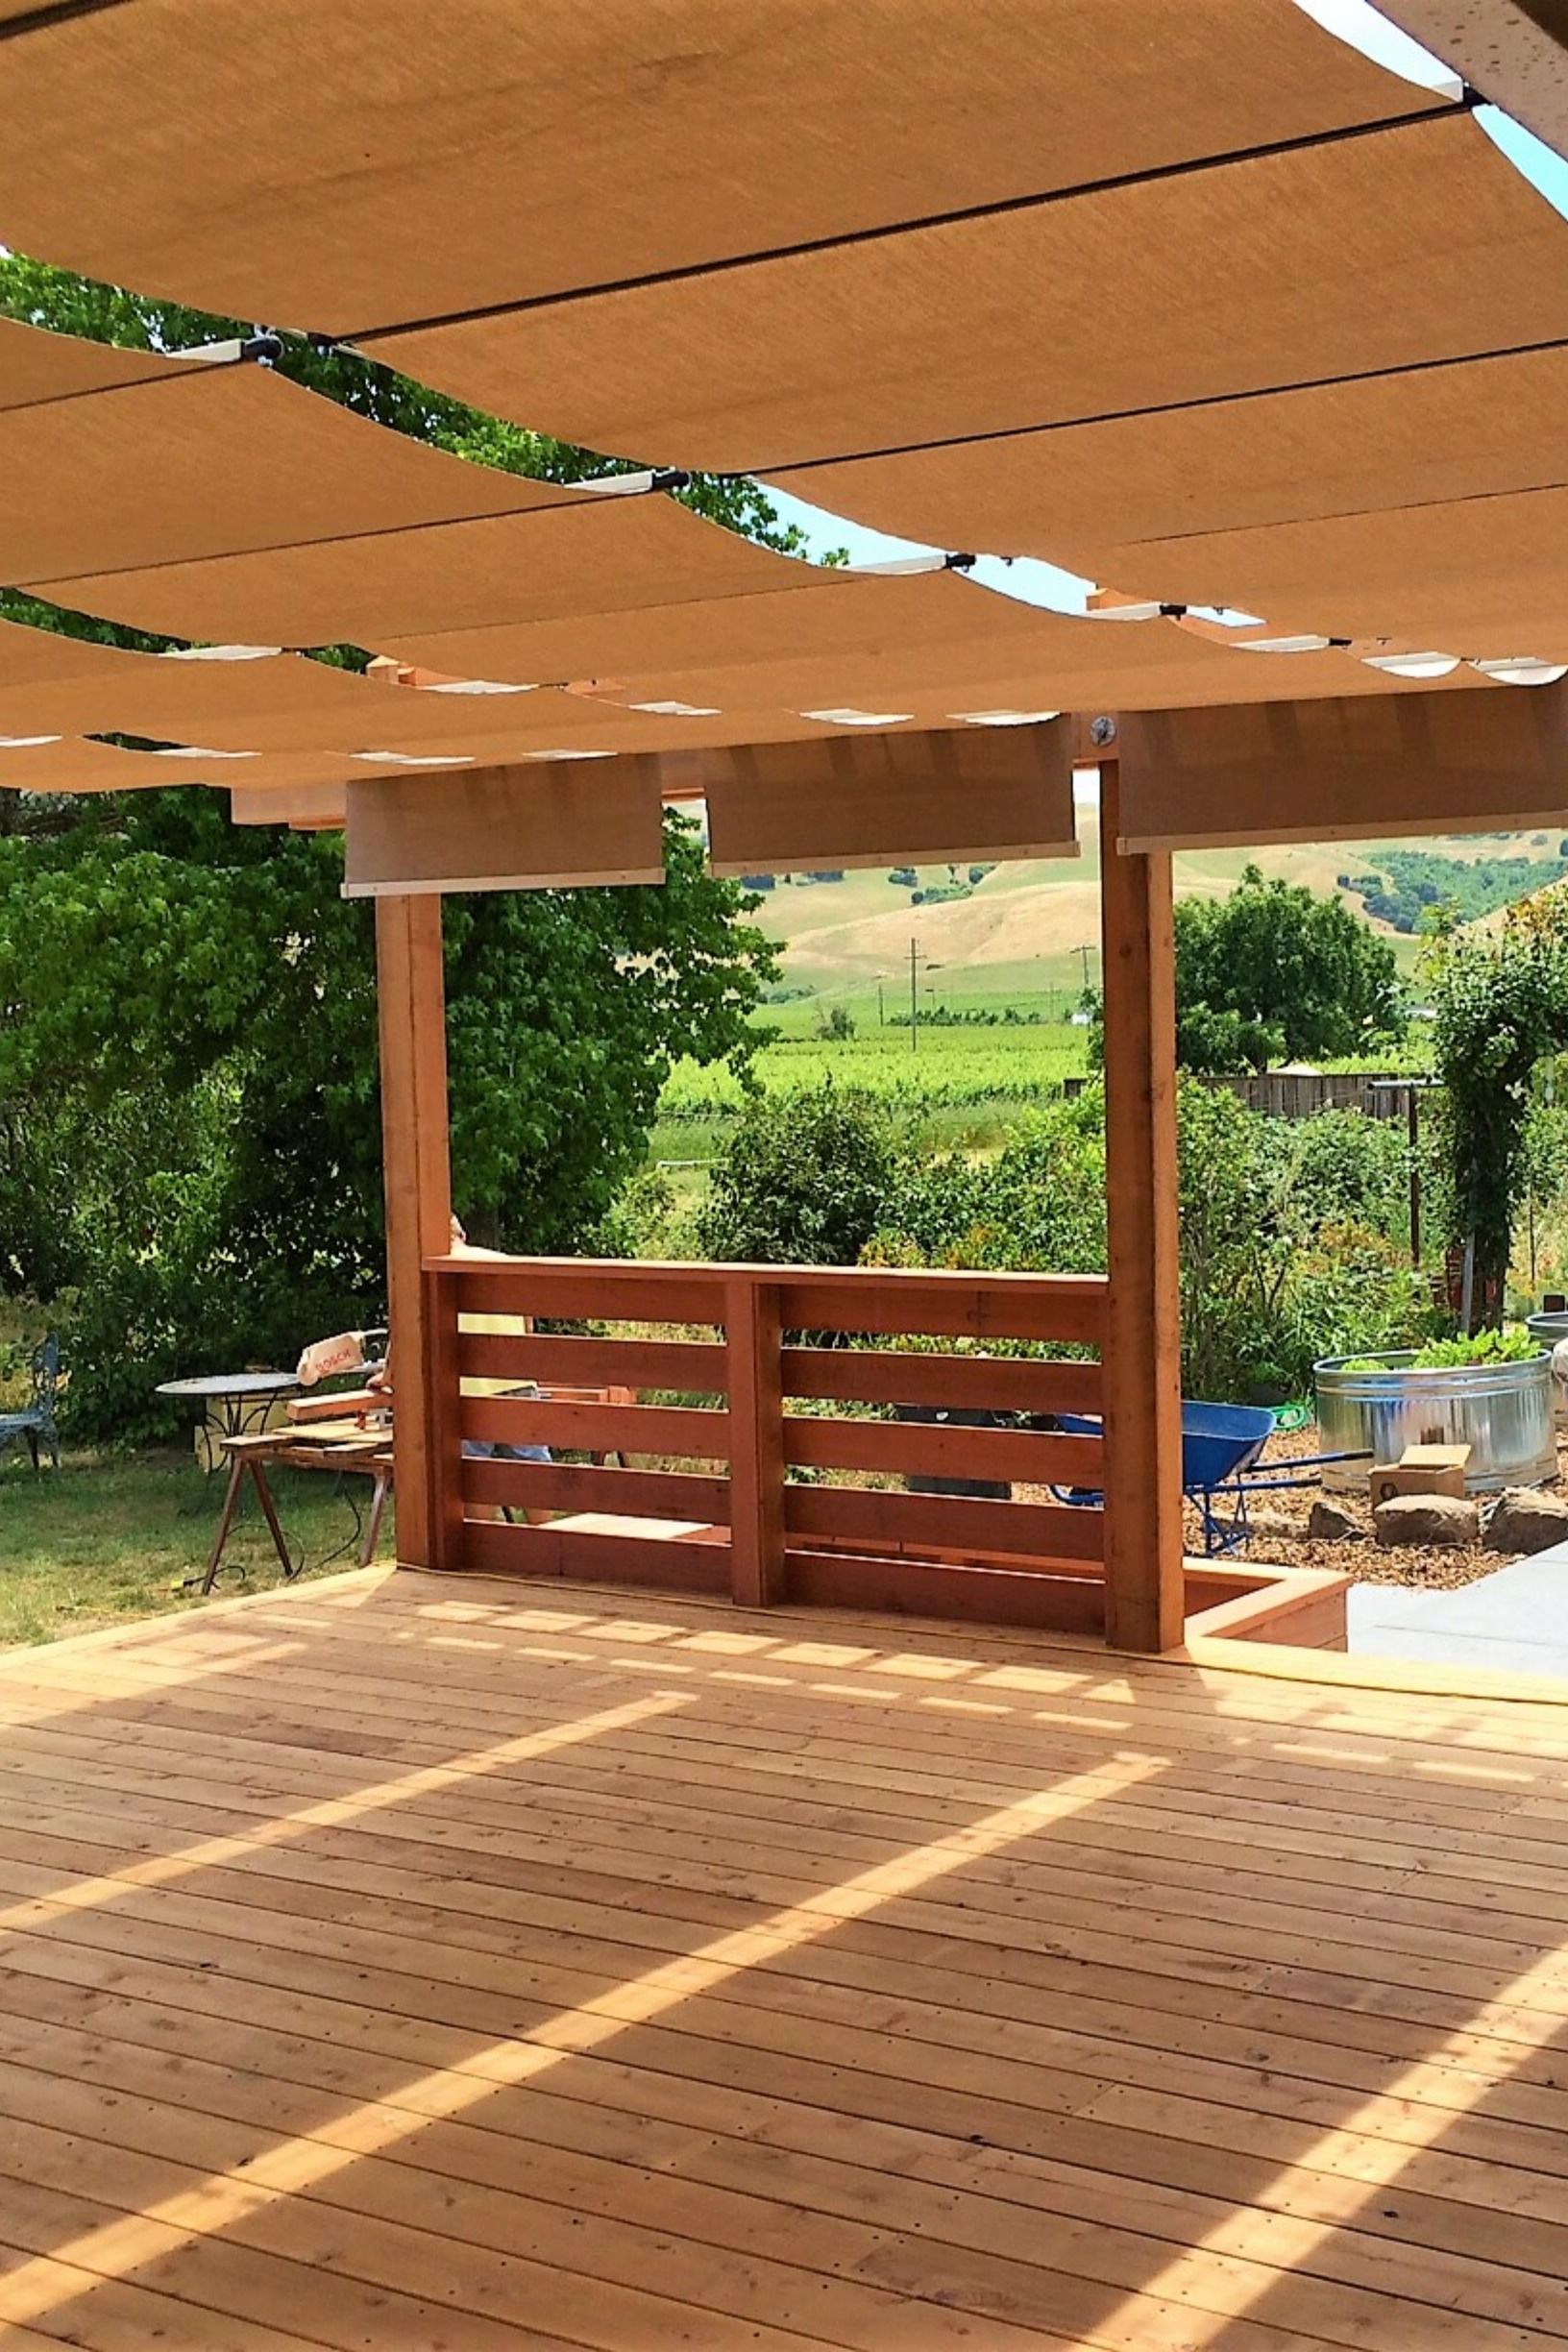 Wood Deck With Earth Tone Fabric Waterproof Shades Pergola Shade Cover Outdoor Fabric Patio Images